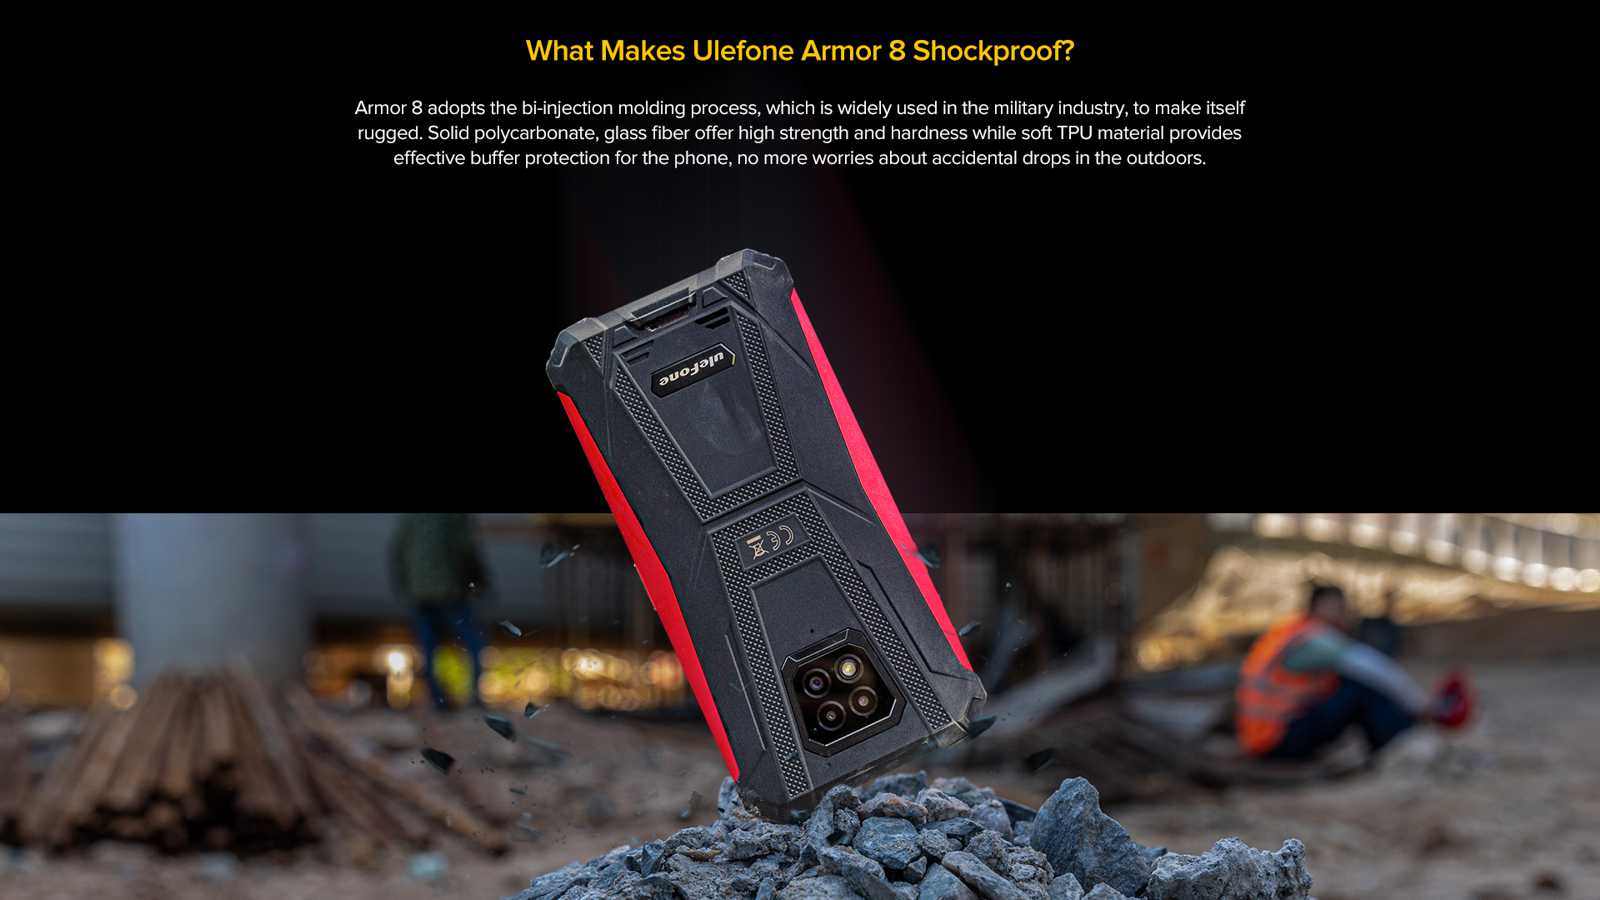 shockproof armor 8